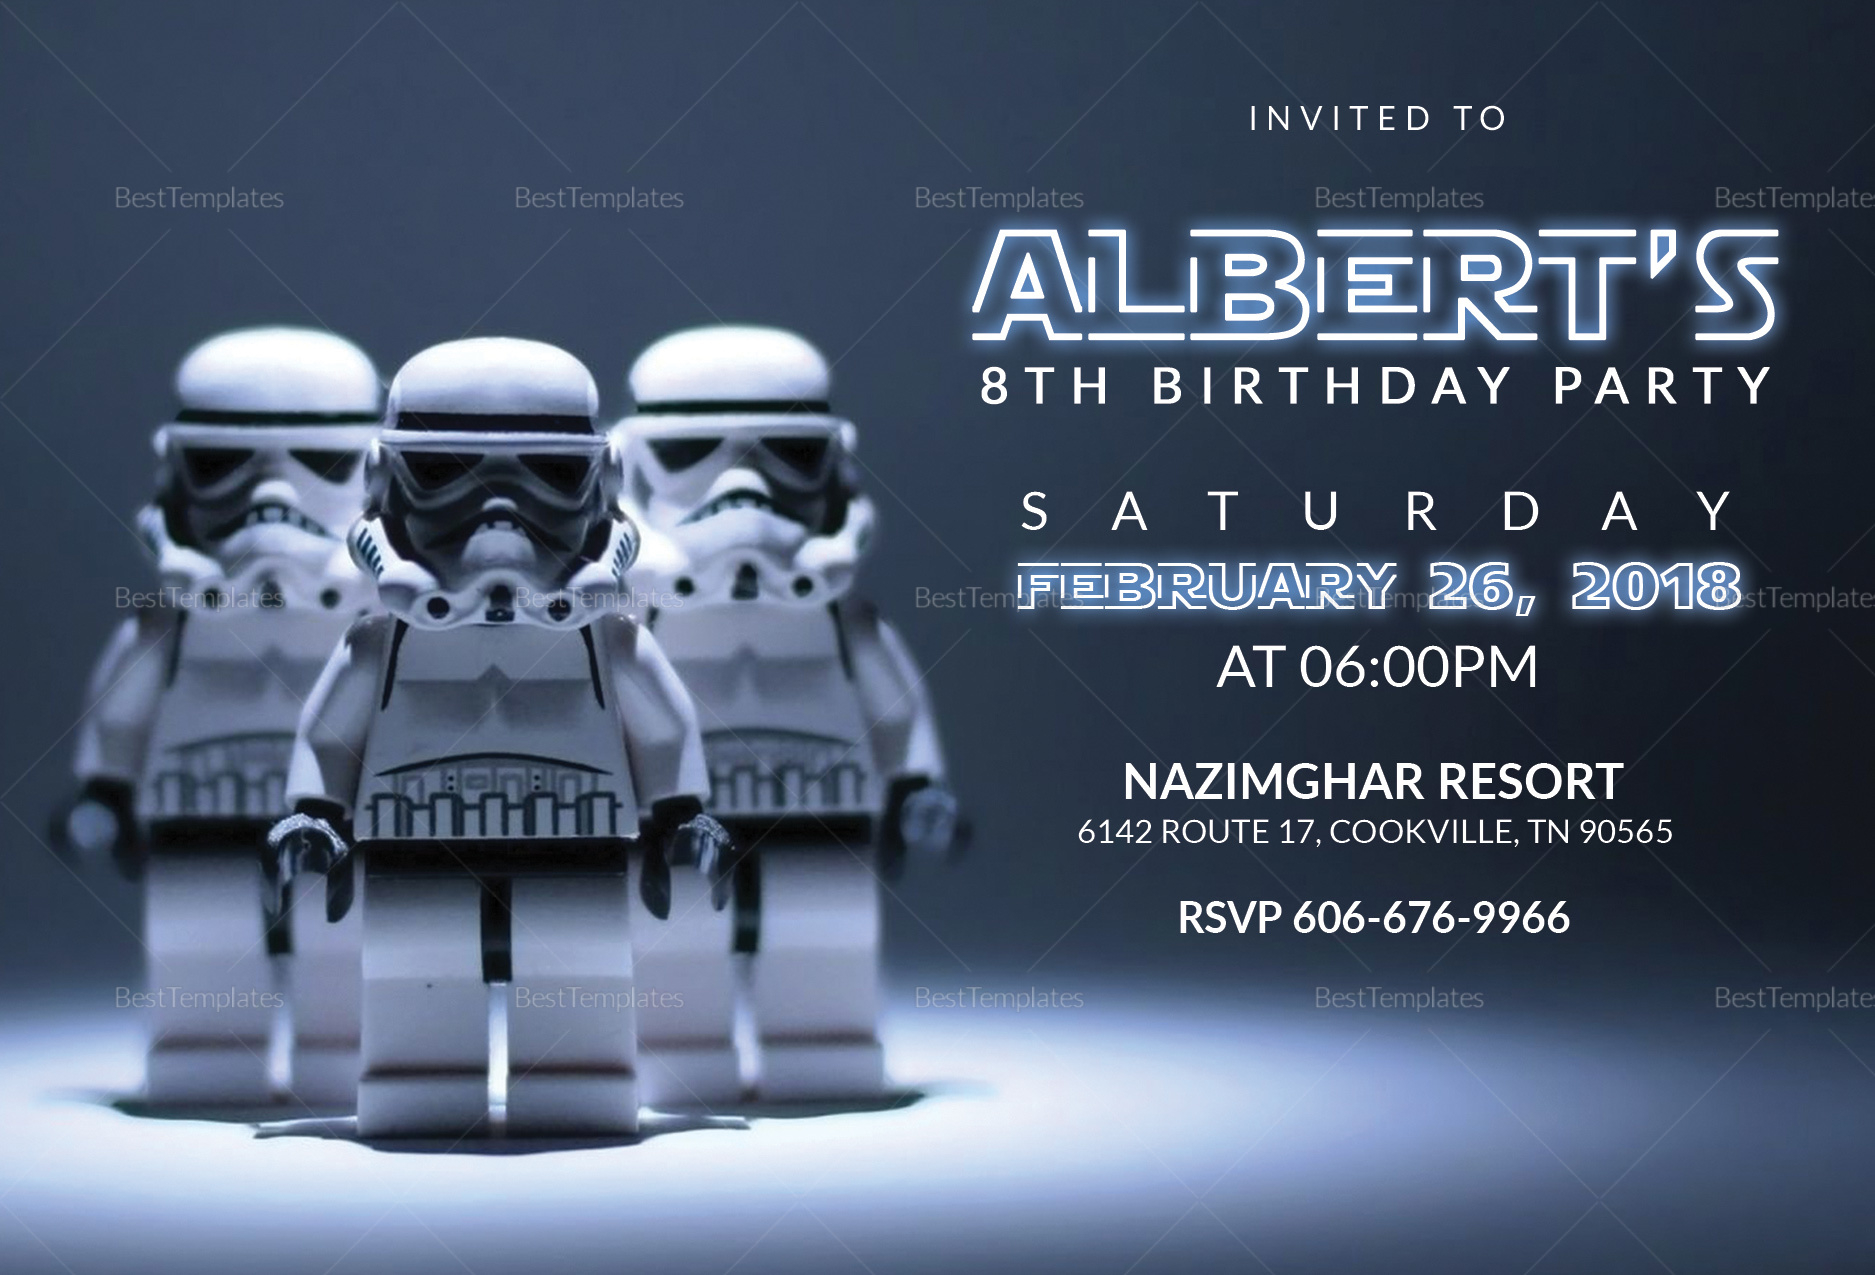 Robot Star Wars Birthday Party Invitation Card Design Template